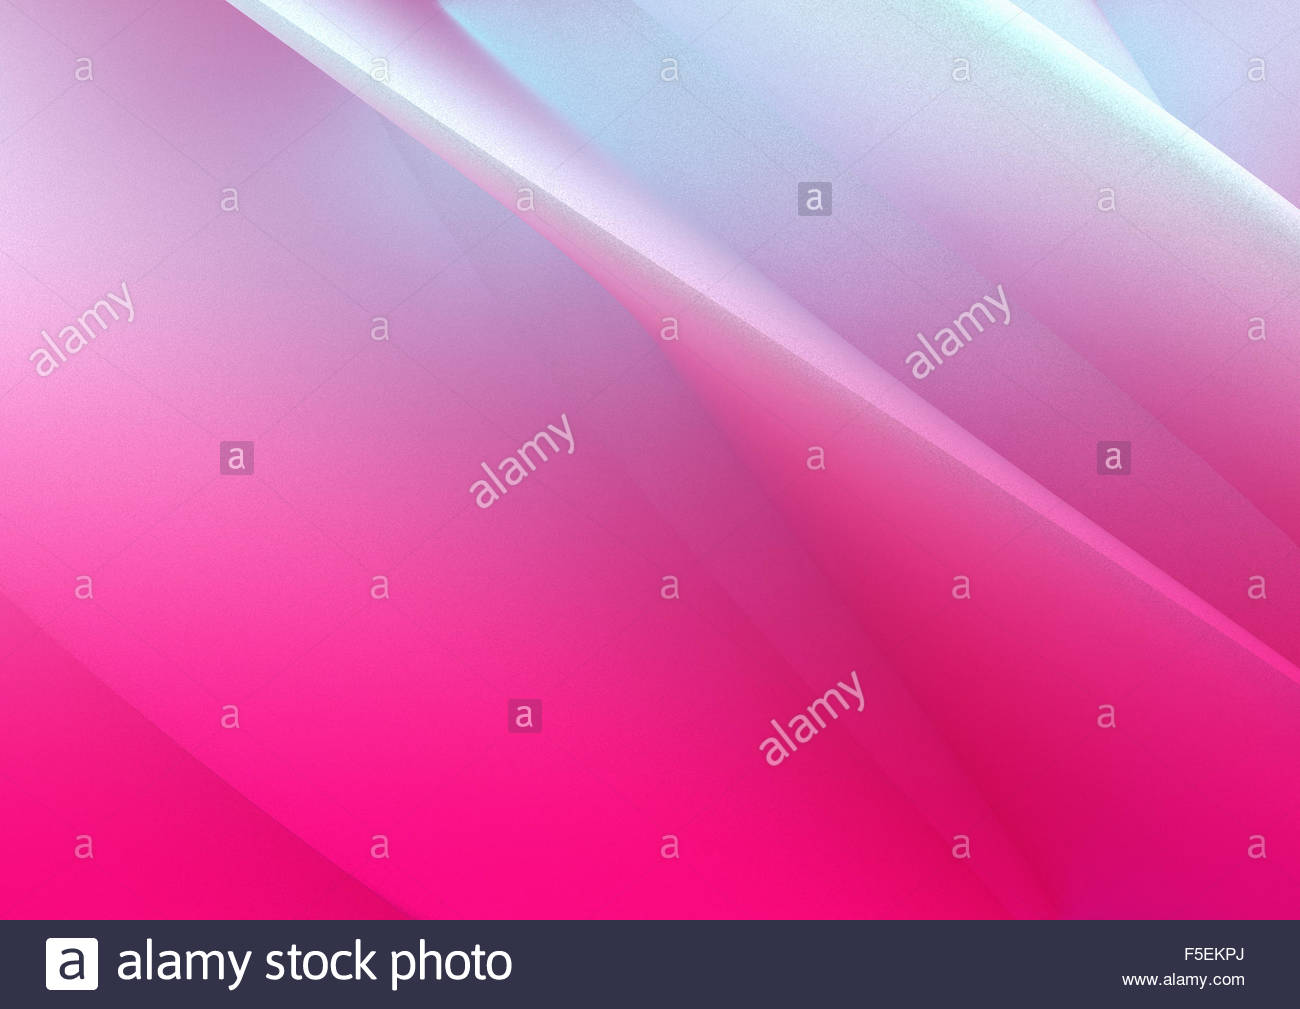 simple pink abstract backgrounds pattern stock photo: 89447978 - alamy